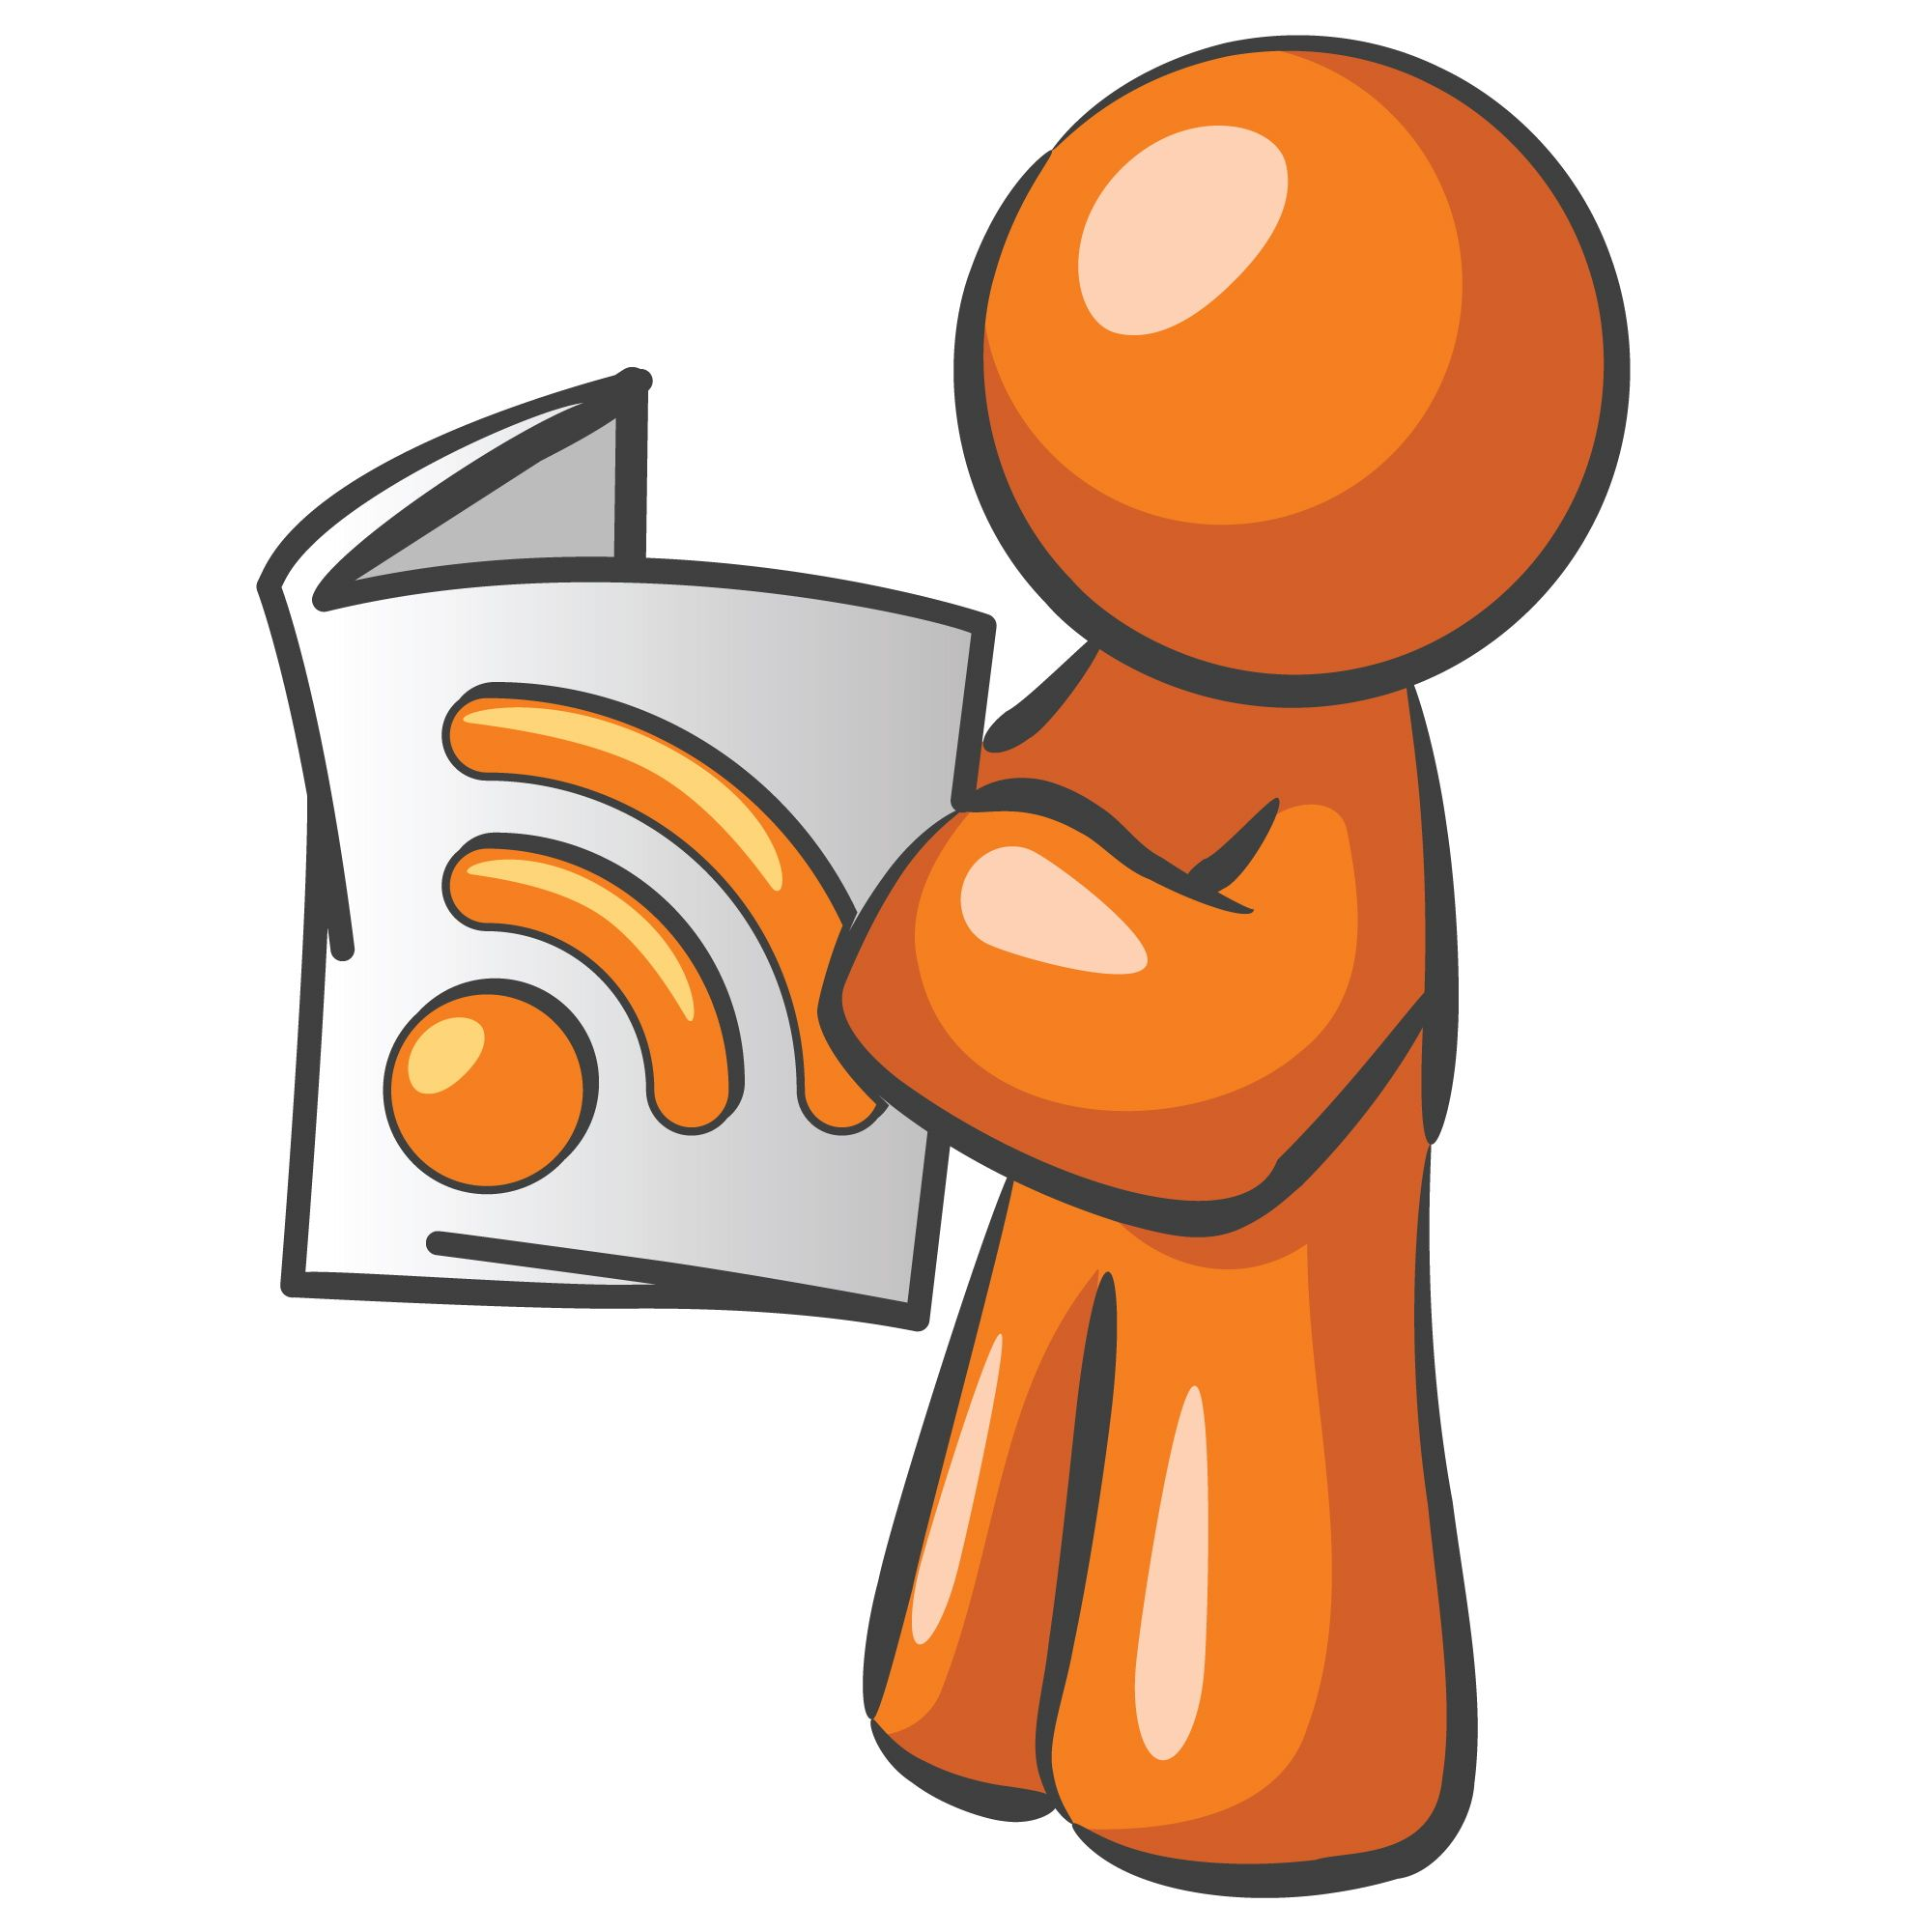 Rss Is A Way To Subscribe To Blogs And Other Social Media